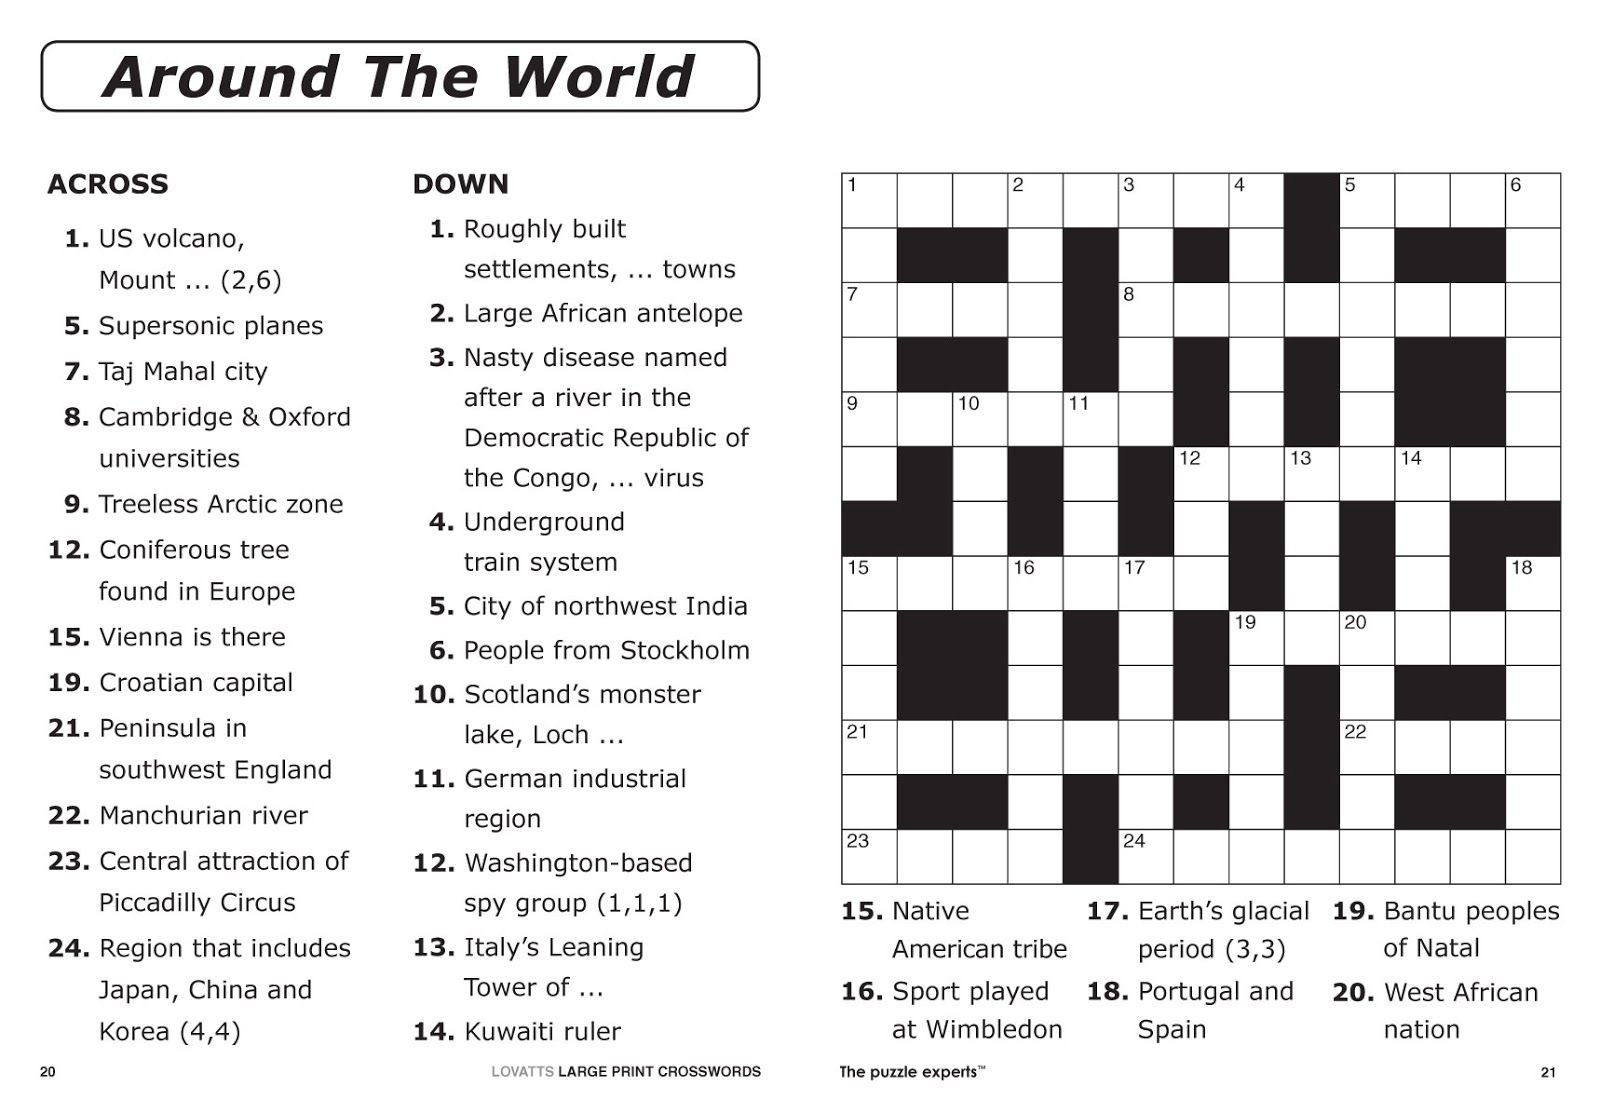 Free Printable Large Print Crossword Puzzles | M3U8 - Printable Crosswords For 14 Year Olds